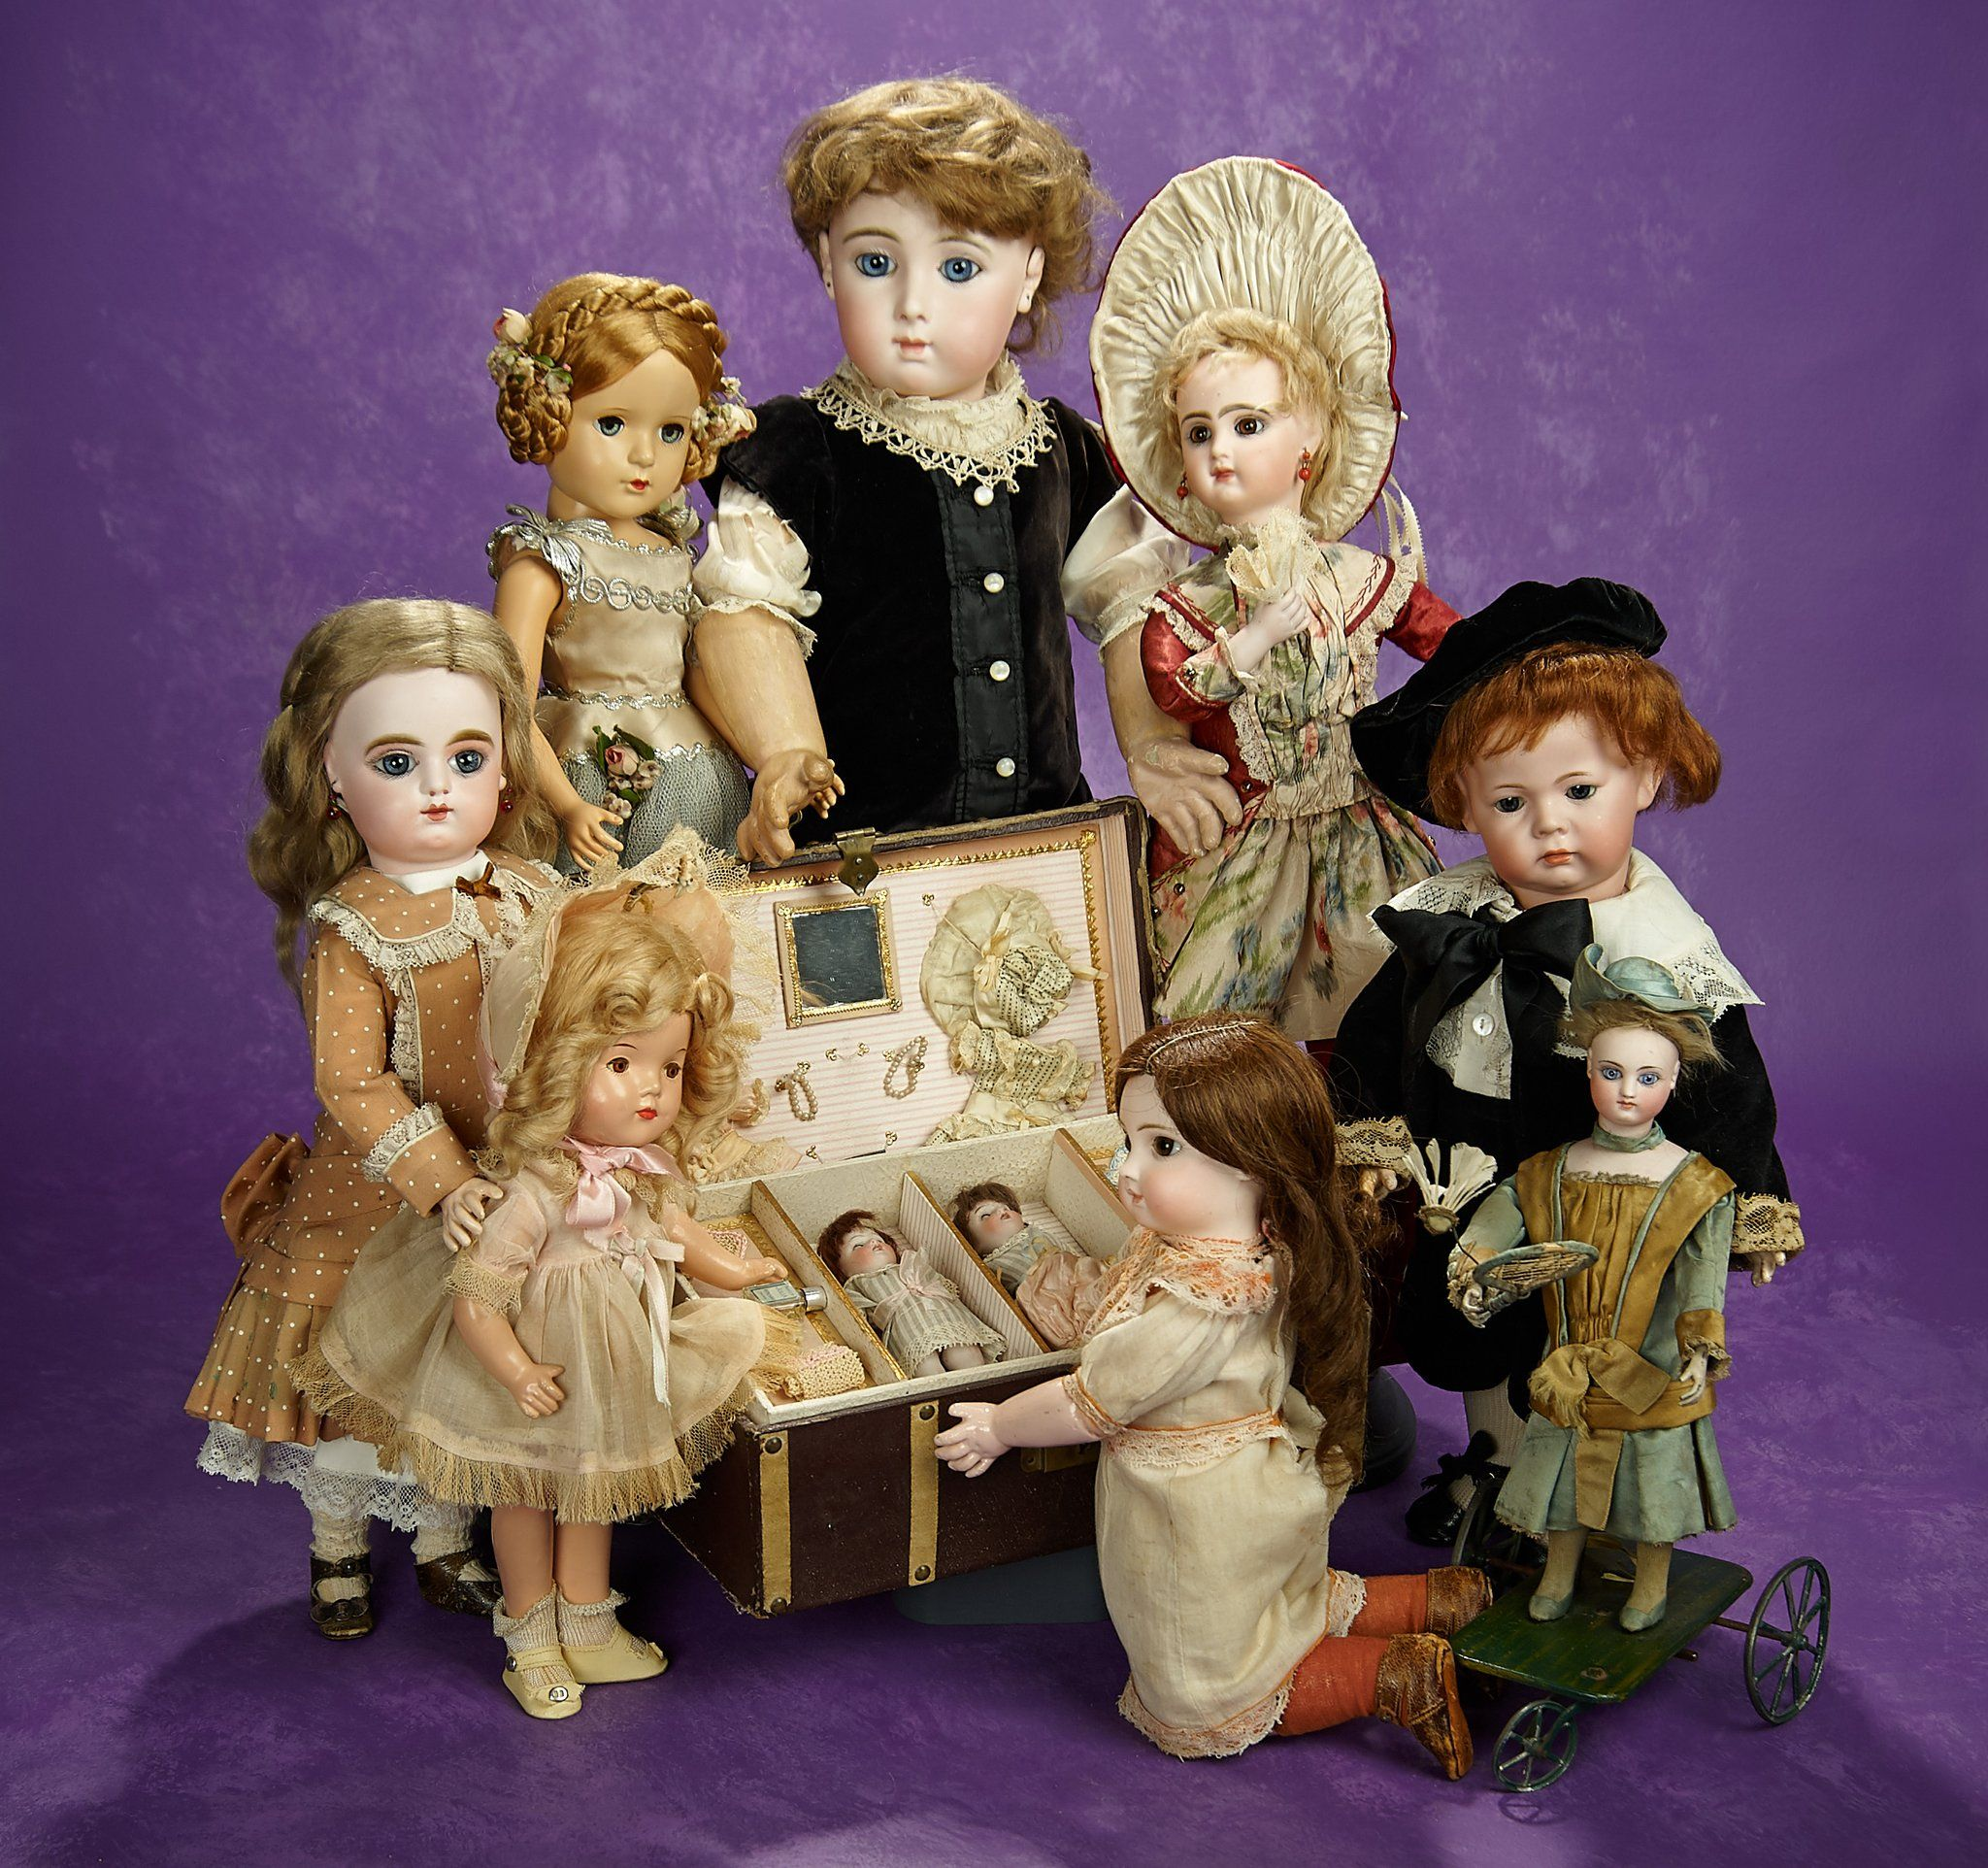 """Theriault's Auctions on Twitter: """"We're having a two-day #Premiere #DollAuction June 10-11 featuring 500 dolls from French, German and American makers https://t.co/C4ZbGPBdCc https://t.co/awhGvgiFEu"""""""